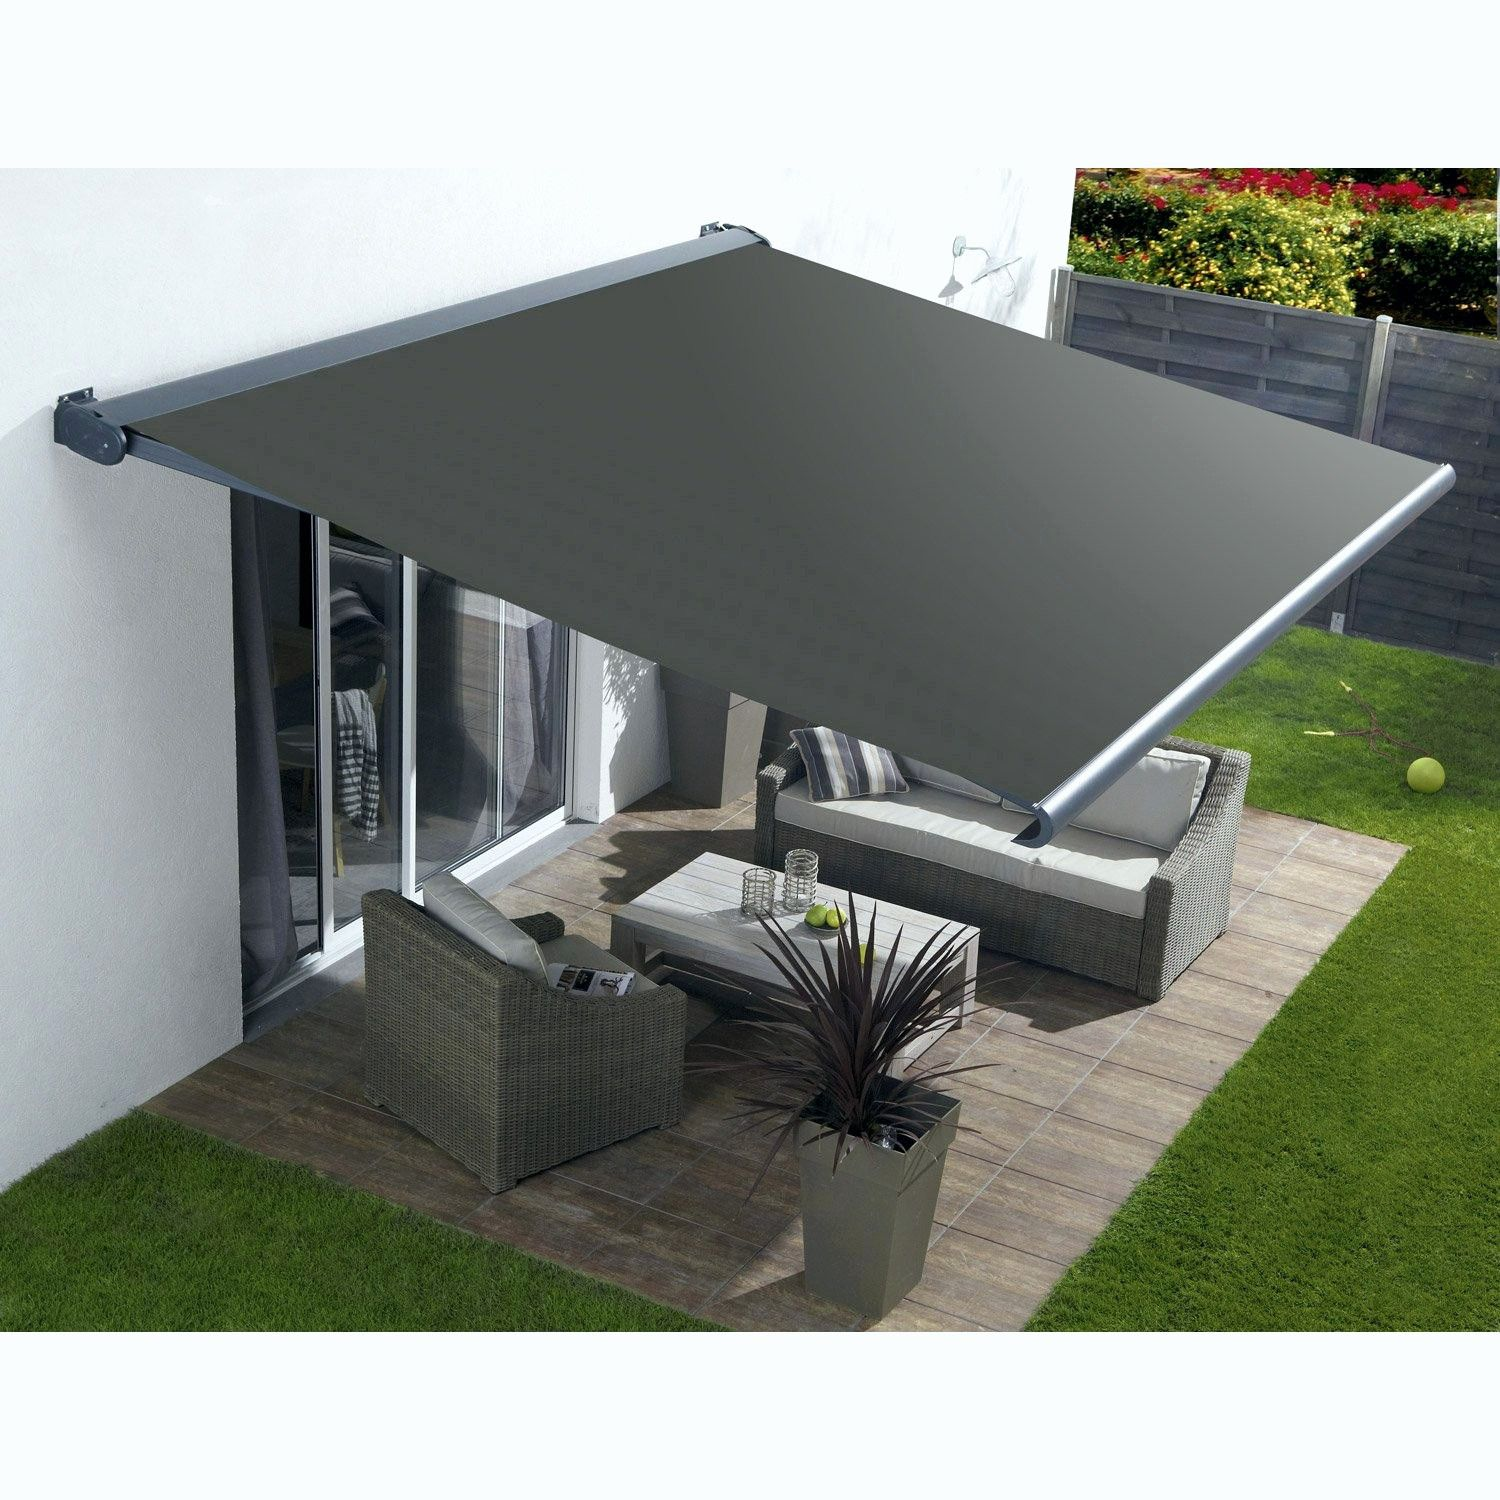 Best Of Grille De Defense Fenetre Brico Depot Patio Shade Patio Design Backyard Patio Designs